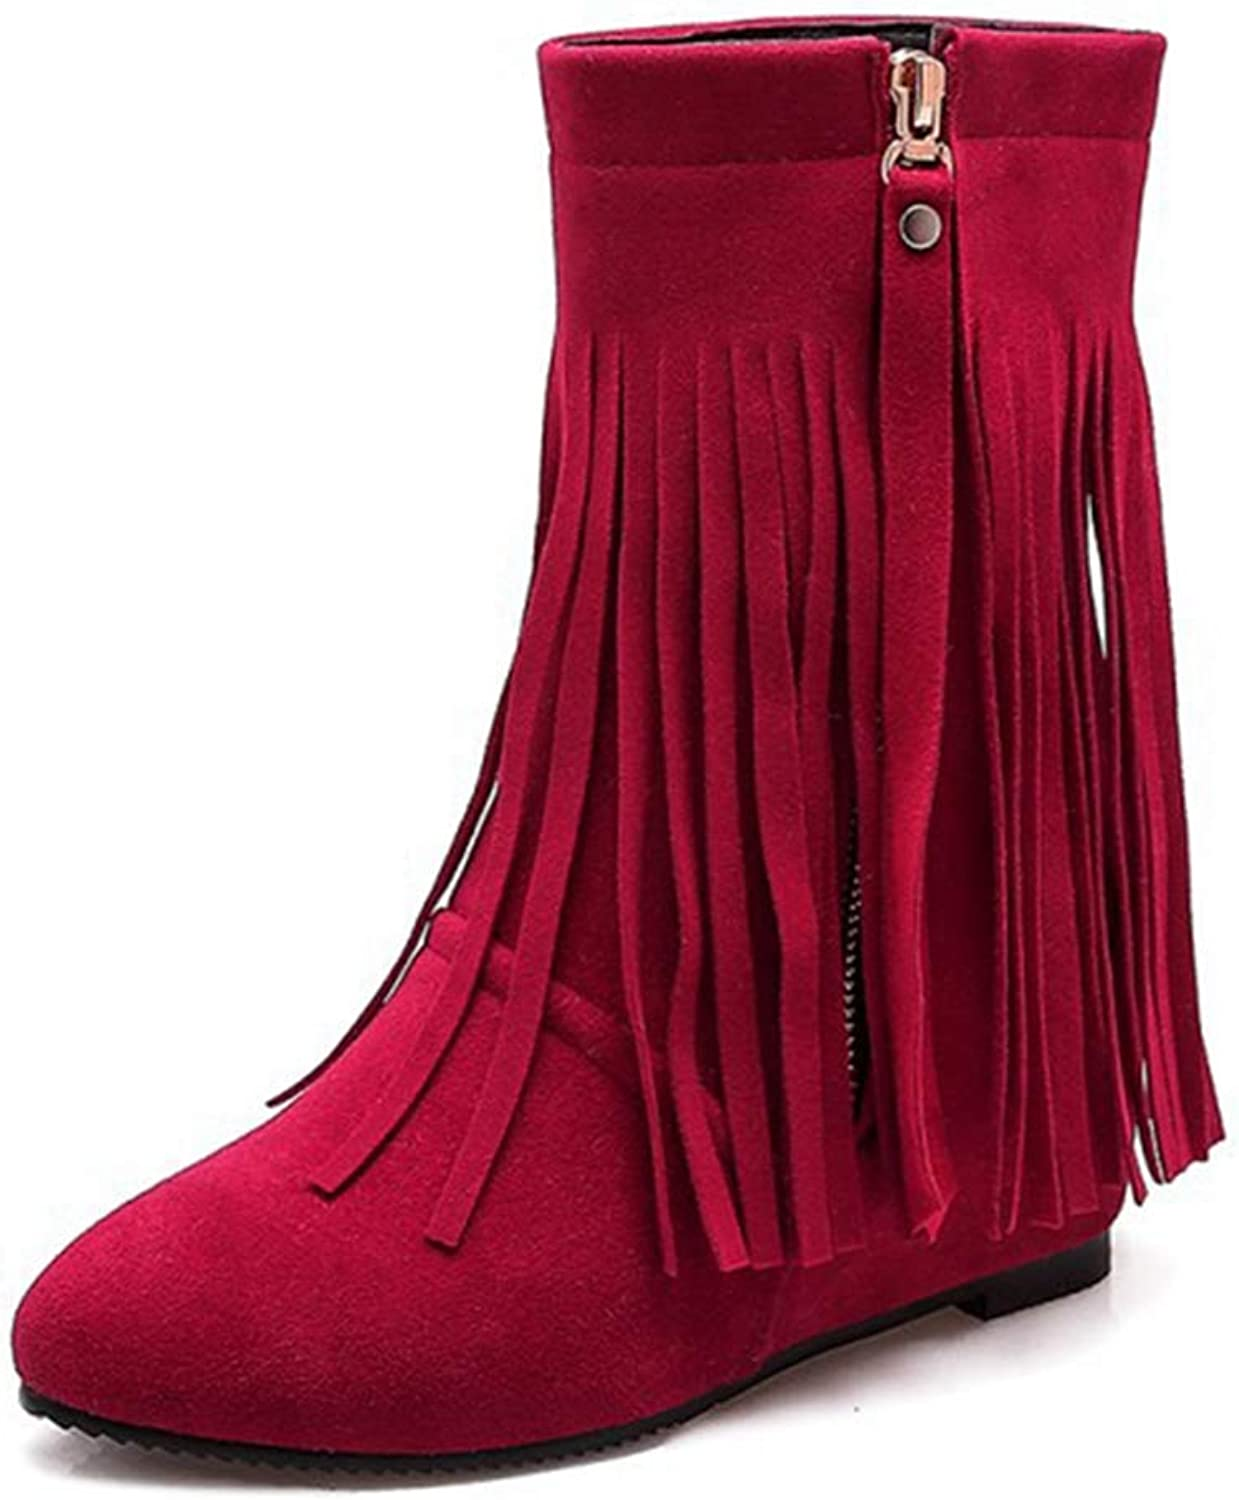 GIY Womens Fringe Wedge Ankle Boots Suede Round Toe Zipper Hidden High Heel Bootie Comfy Tassel Short Boot